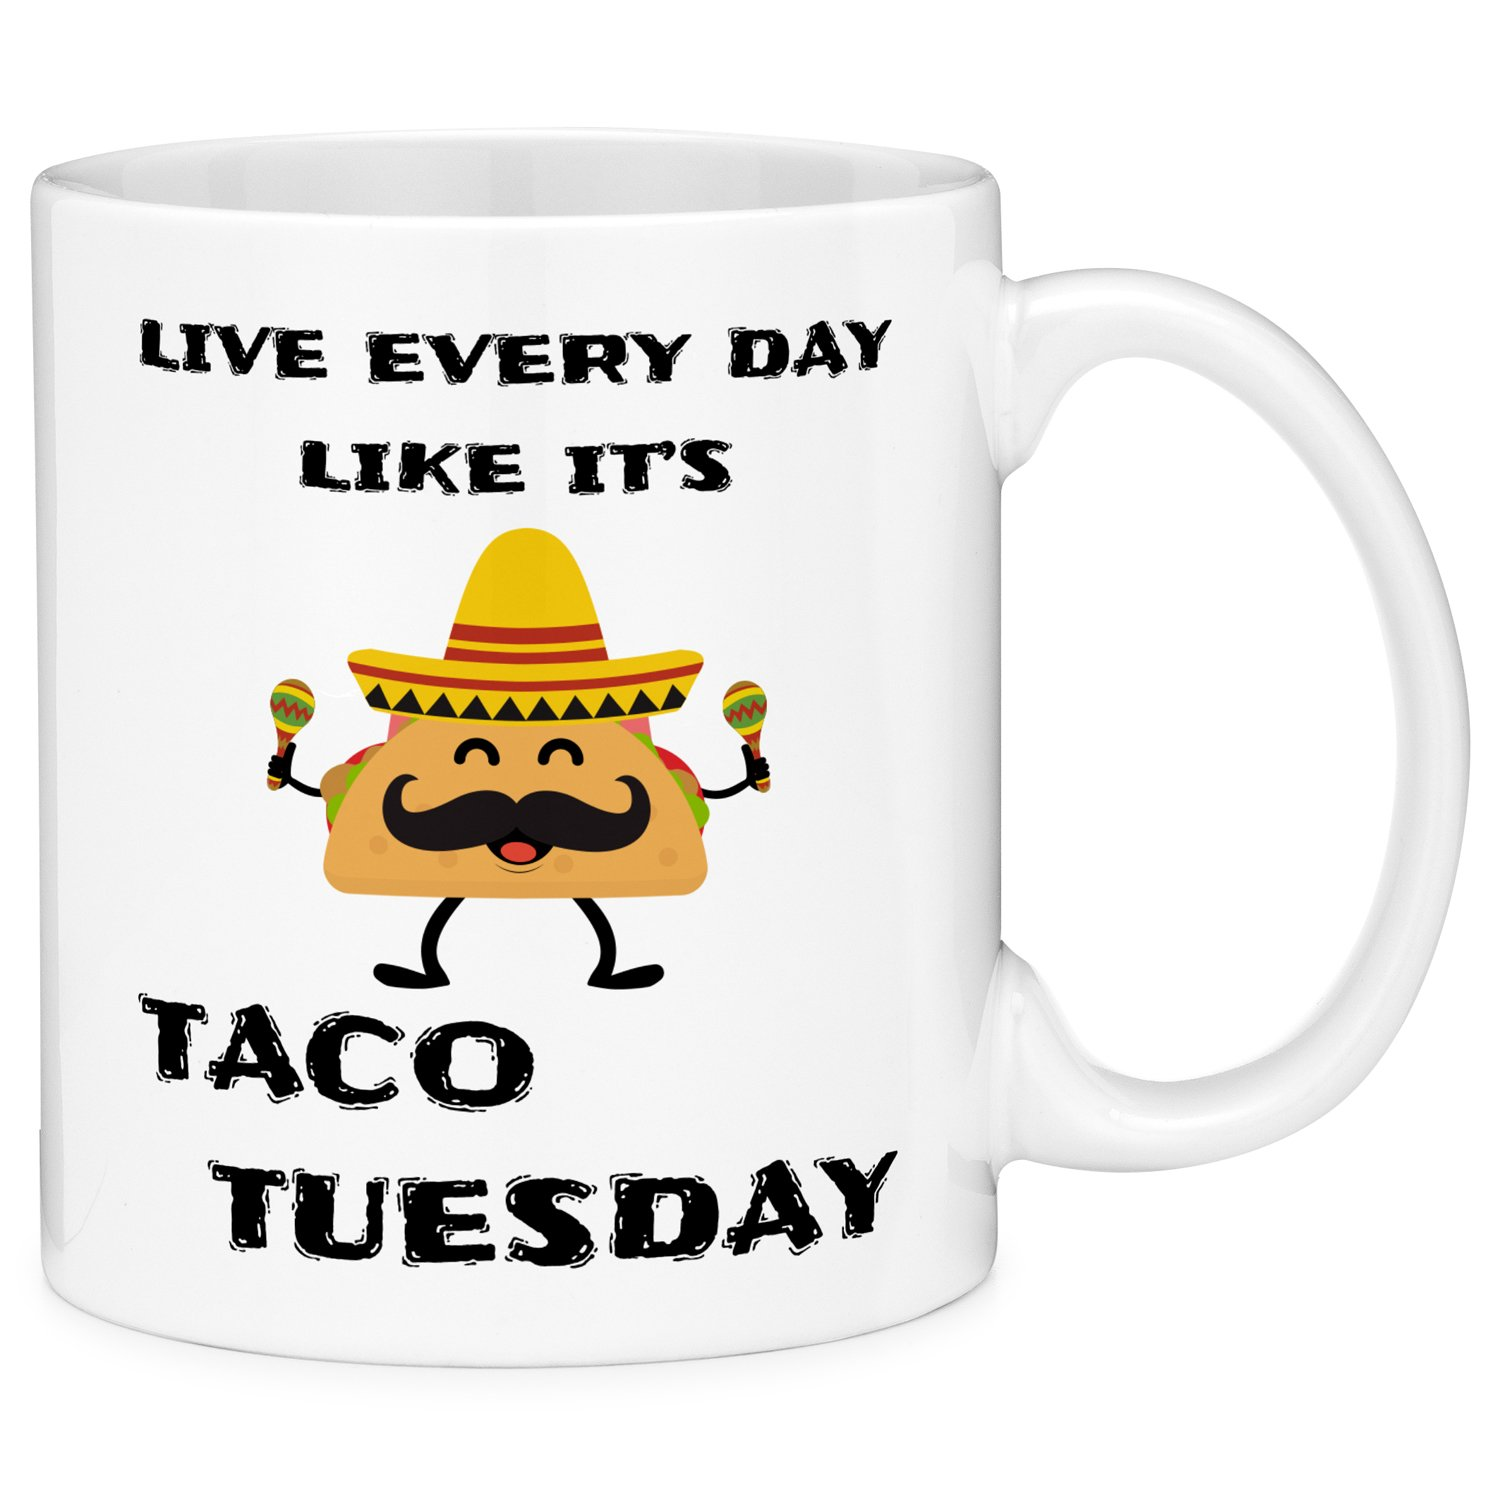 Mugvana Live Every Day Like It's Taco Tuesday Funny Coffee Mug Cup Fun Novelty Gifts for Women and Men with Gift Box (11oz)